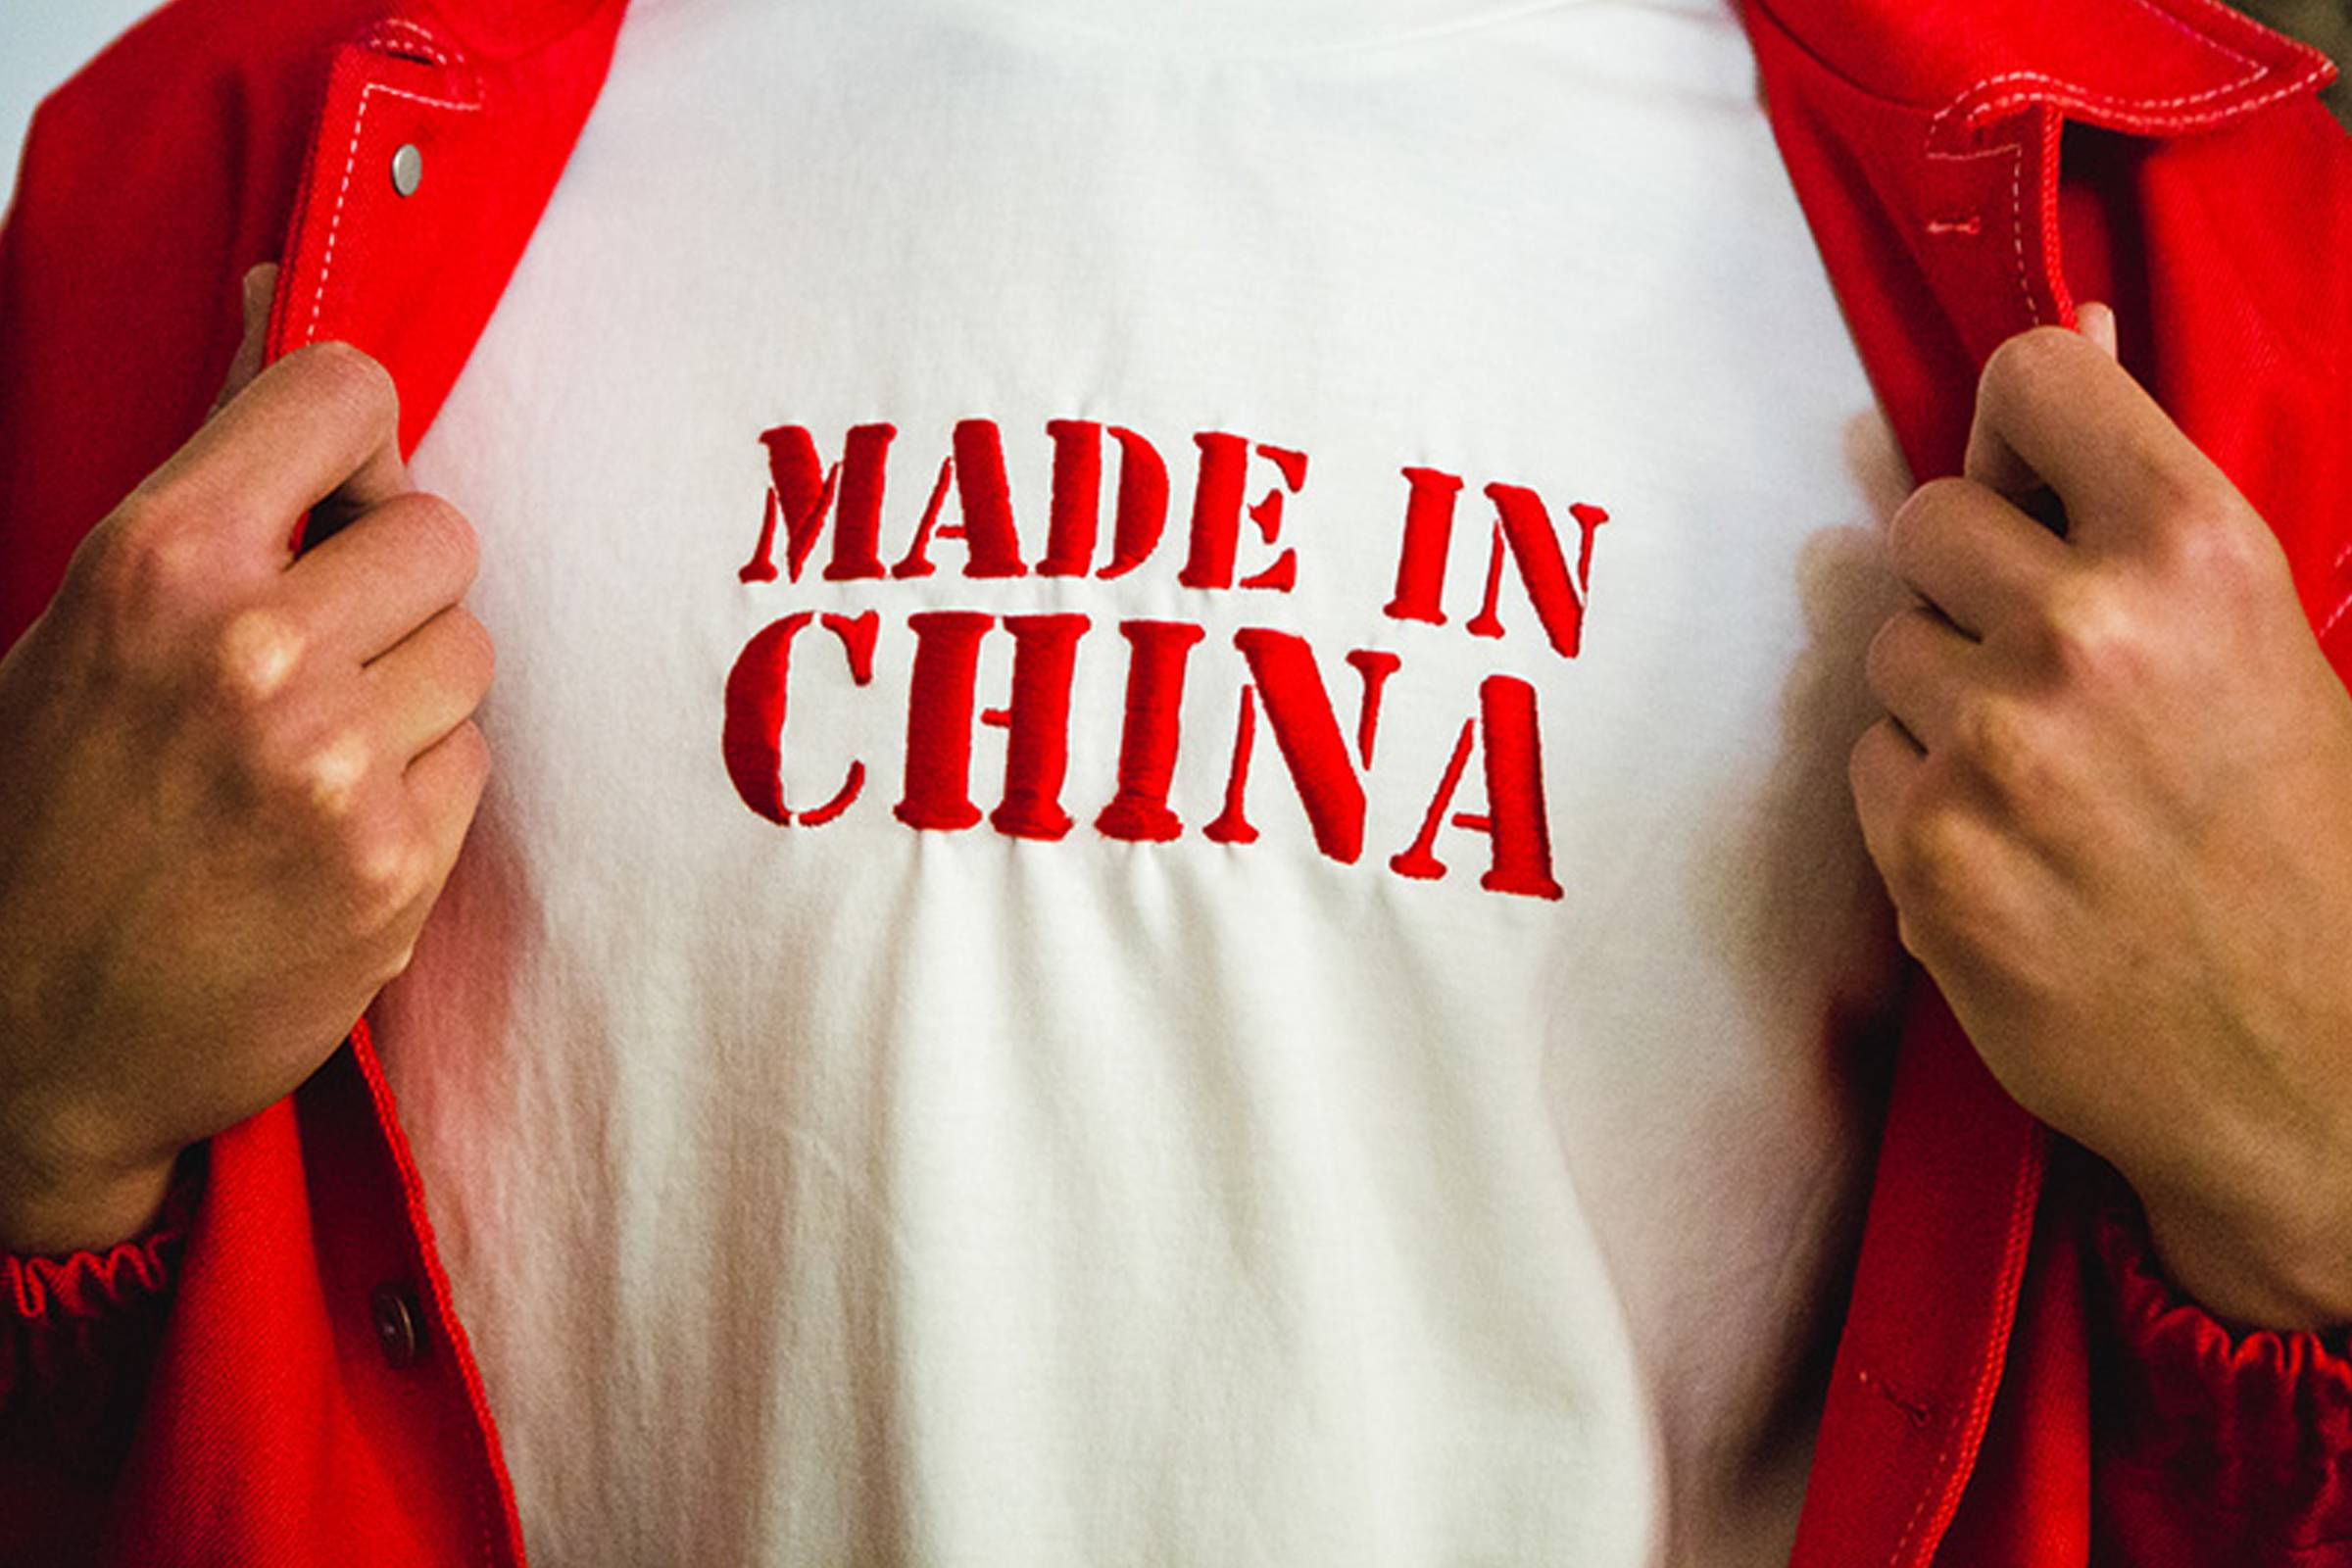 Made in China: China's Evolution From Mass Production to Home Grown Design